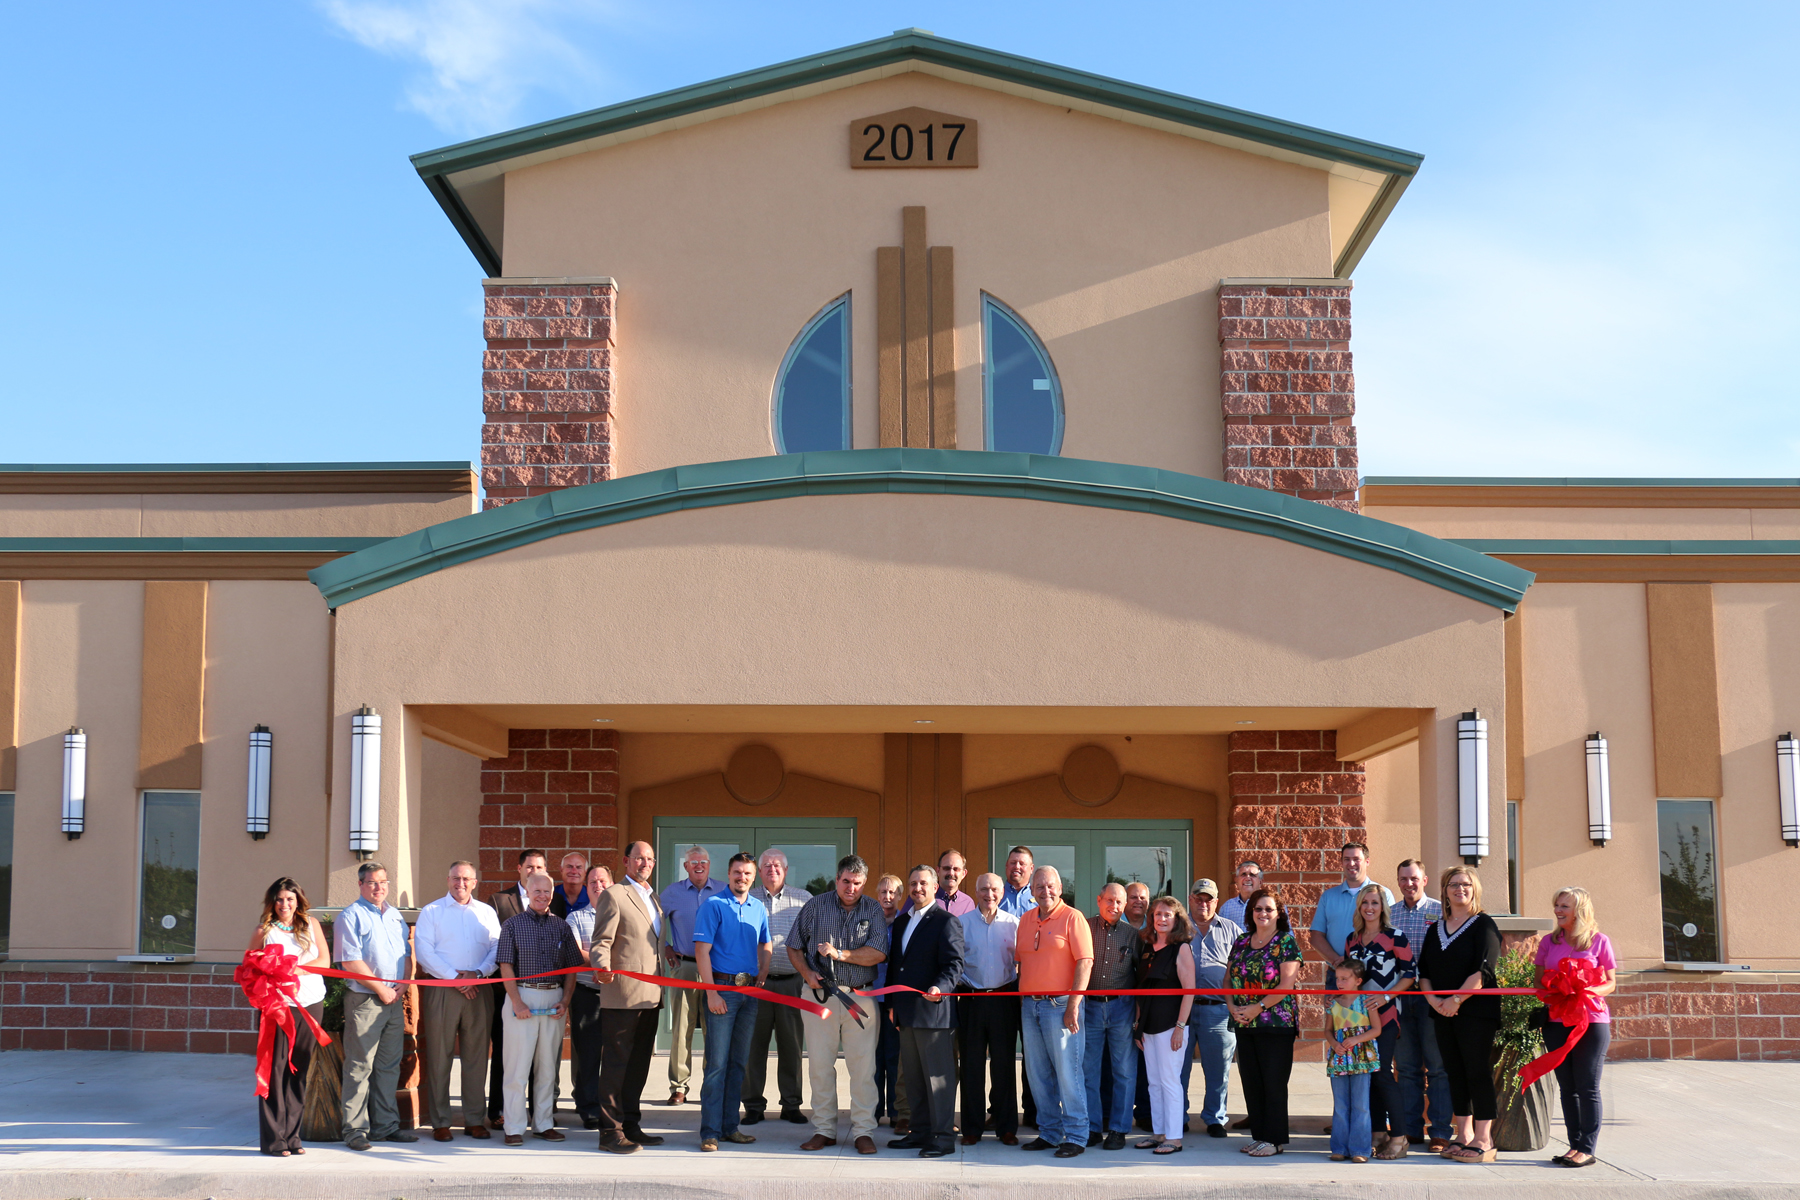 Pictured above: Grady County Fair Board Members, County Commissioners and local Business and Community Leaders cut the ribbon to open the new Indoor Arena.